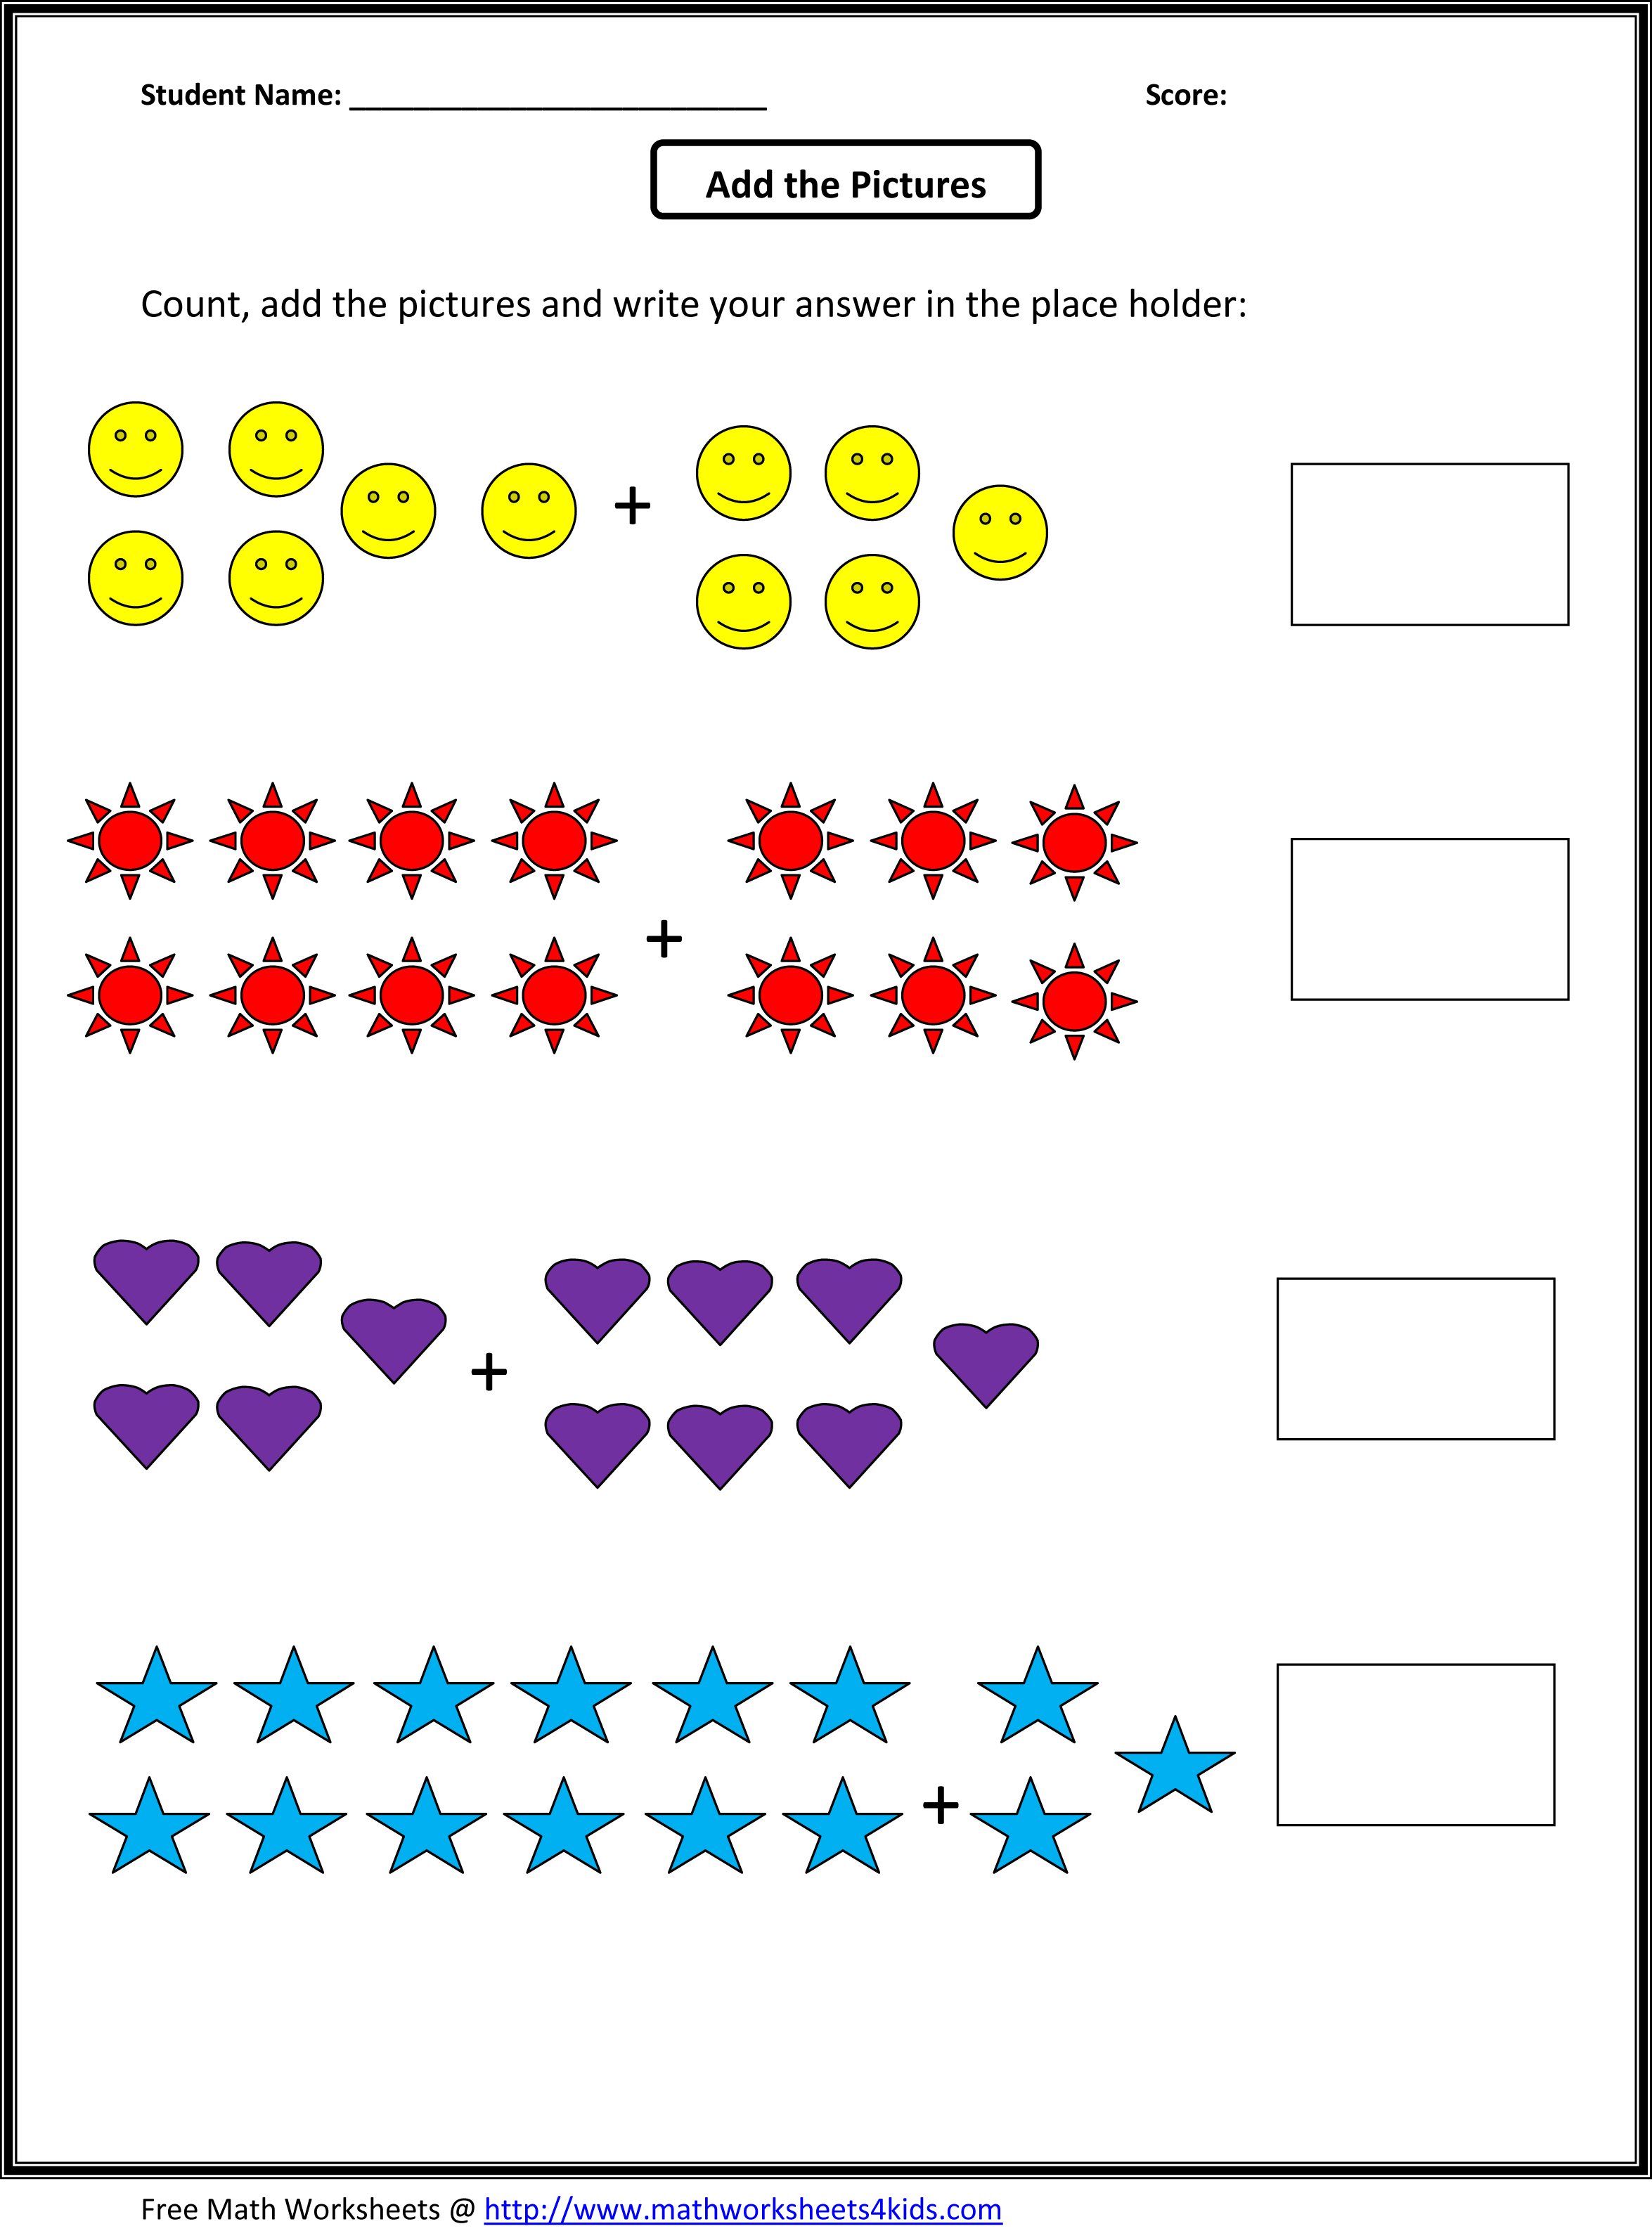 Weirdmailus  Gorgeous Grade  Maths Worksheet  Reocurent With Gorgeous Math Worksheets For St Grade Free  Reocurent With Enchanting Past Perfect Progressive Worksheet Also Draw Conclusions Worksheet In Addition Worksheets On Connectors In English Grammar And Vocabulary Builder Worksheets As Well As Quick Maths Worksheets Additionally Worksheet On Square Roots And Cube Roots From Reocurentcom With Weirdmailus  Gorgeous Grade  Maths Worksheet  Reocurent With Enchanting Math Worksheets For St Grade Free  Reocurent And Gorgeous Past Perfect Progressive Worksheet Also Draw Conclusions Worksheet In Addition Worksheets On Connectors In English Grammar From Reocurentcom